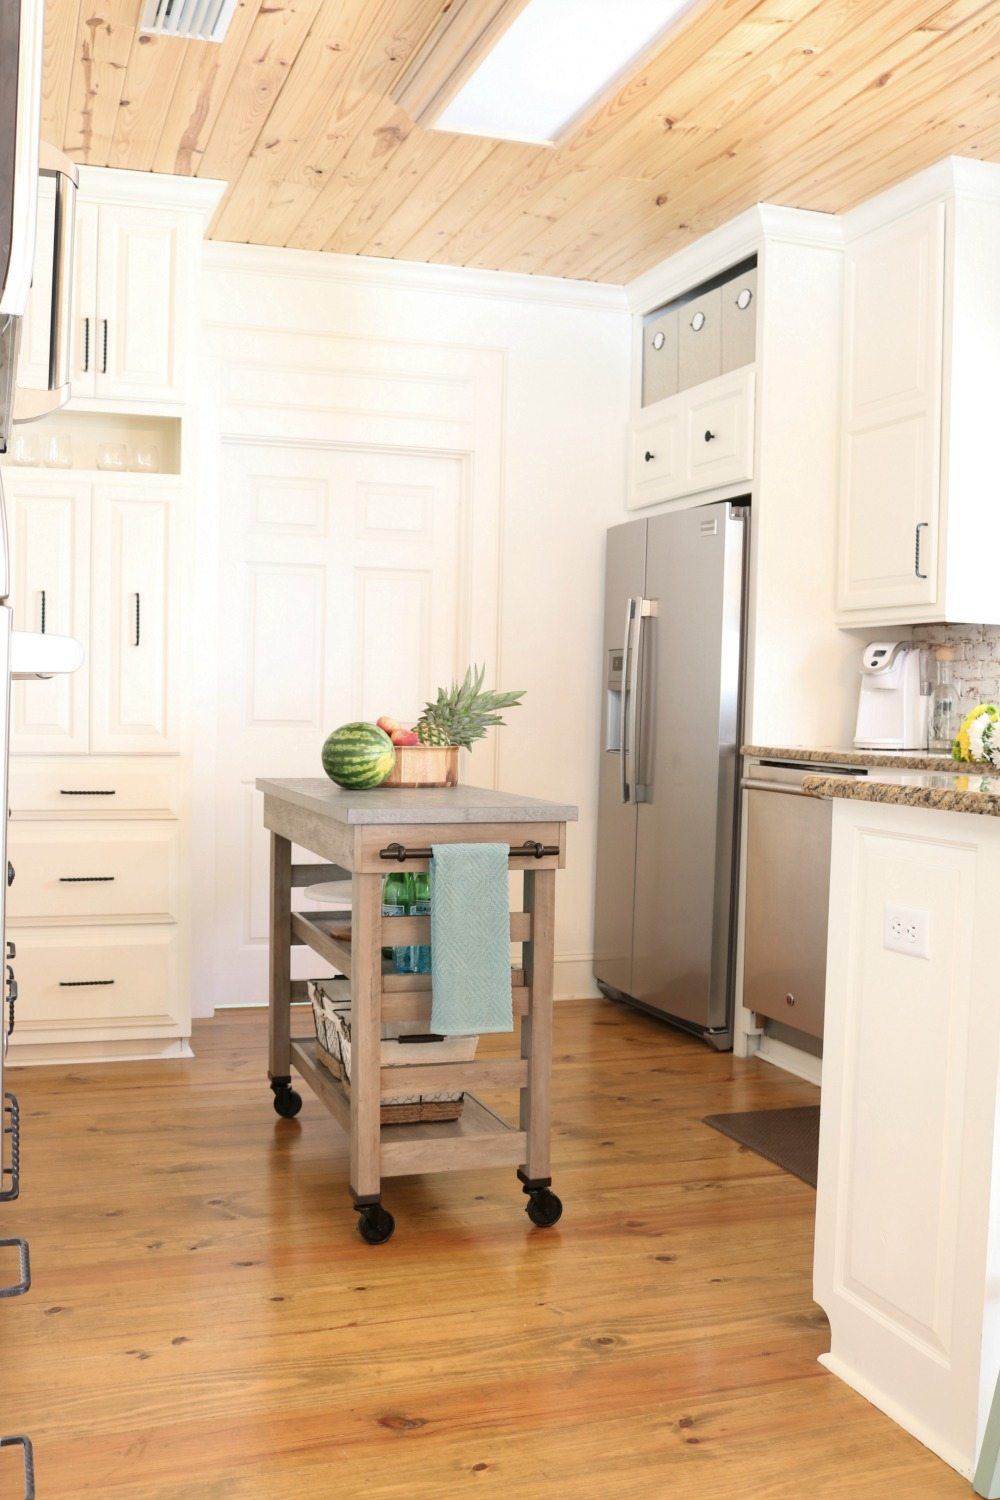 Cart on wheels perfect for a kitchen island